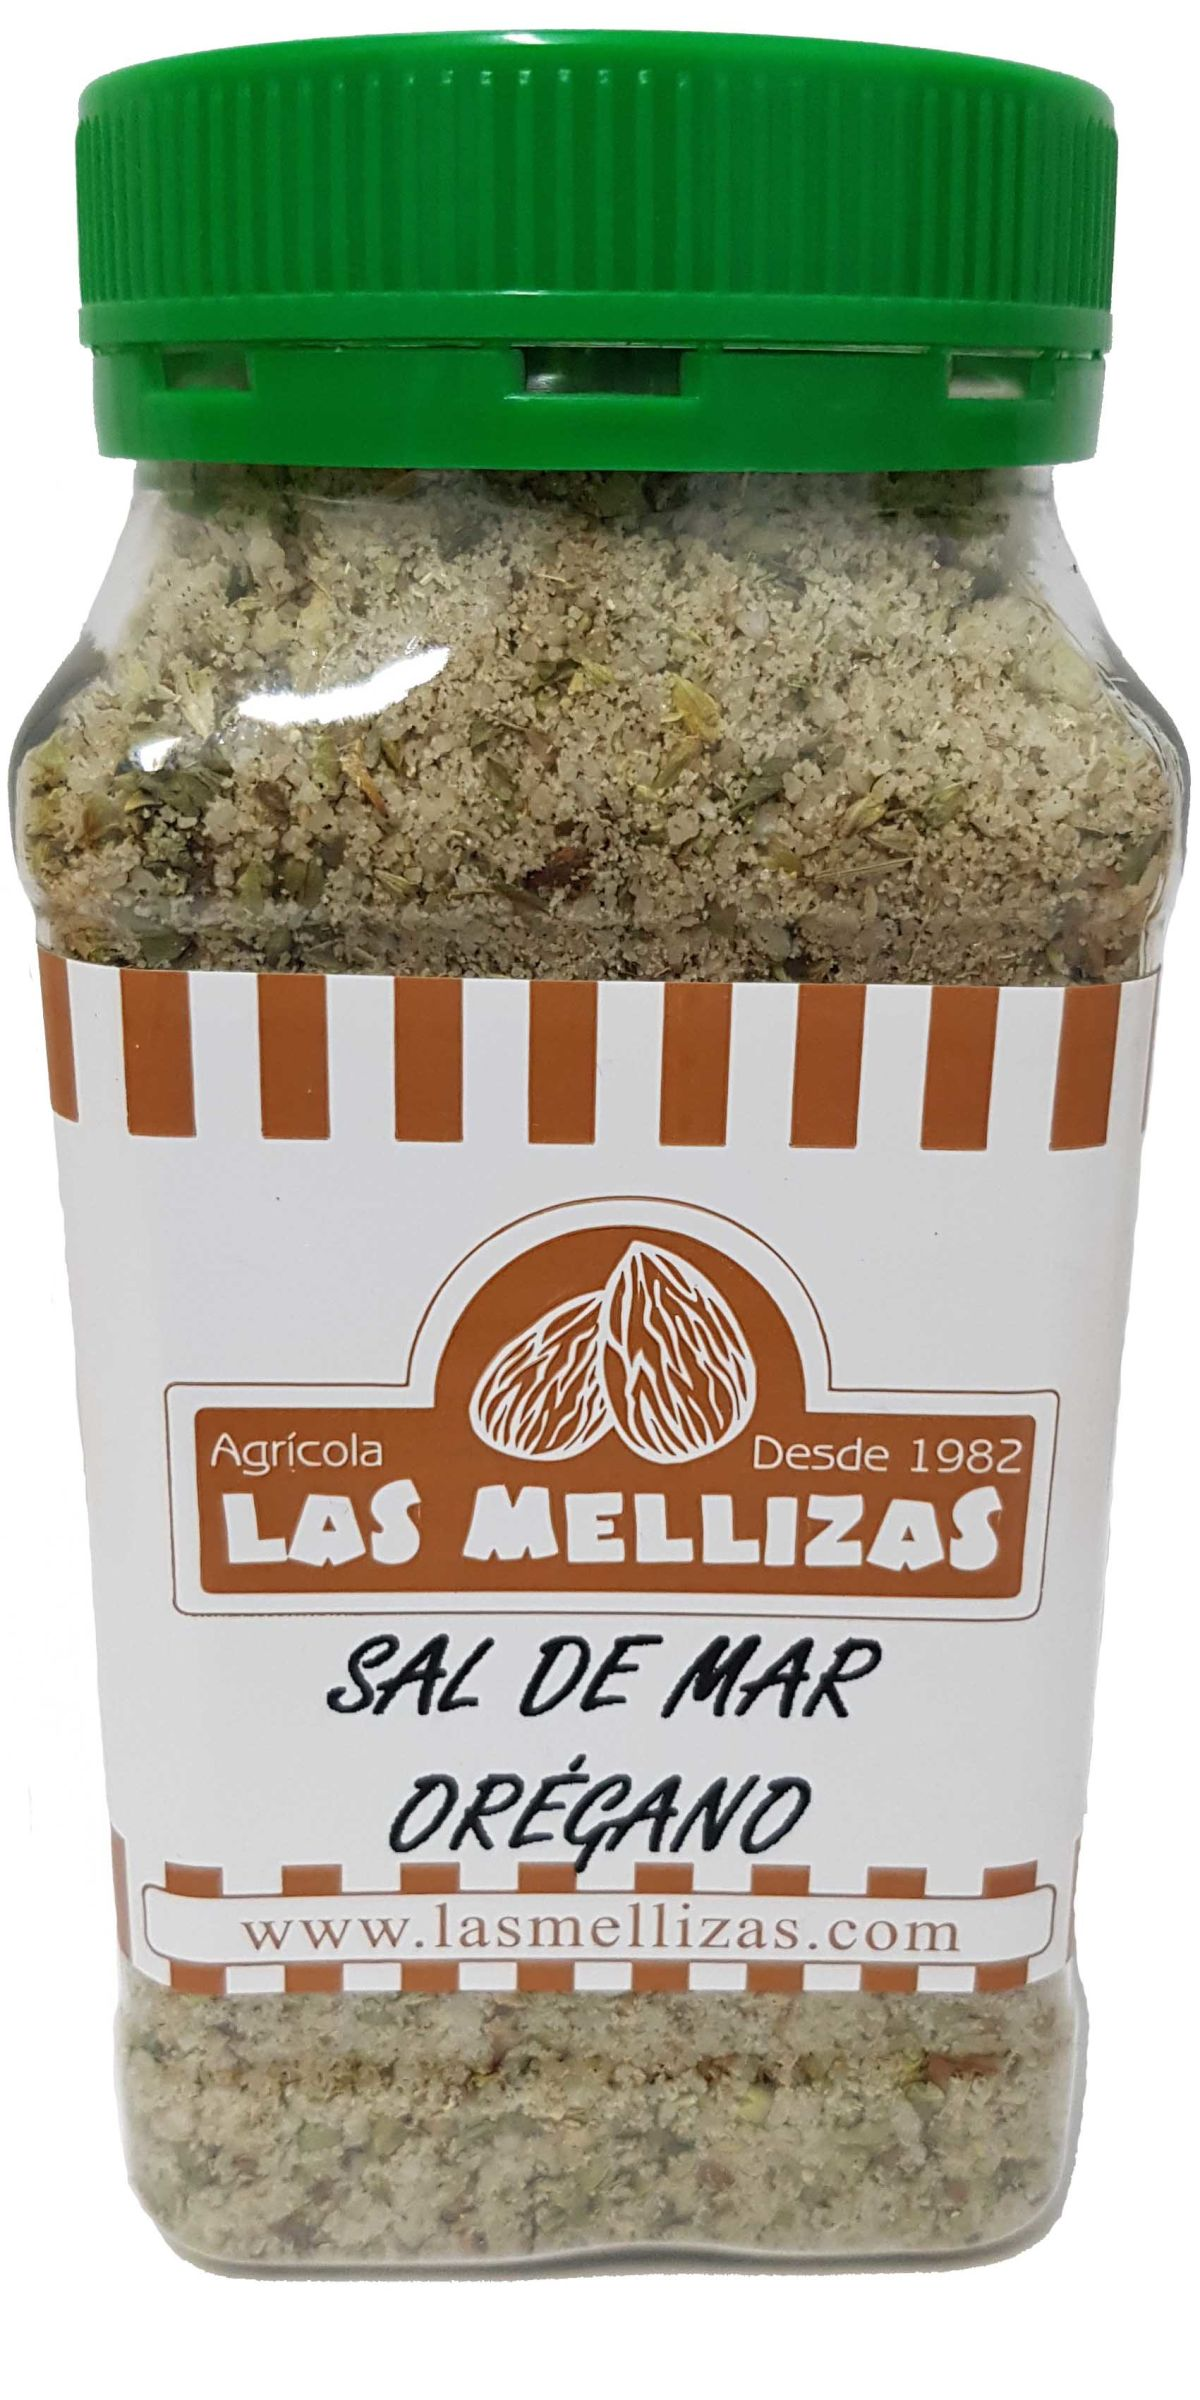 Sal de Mar Oregano